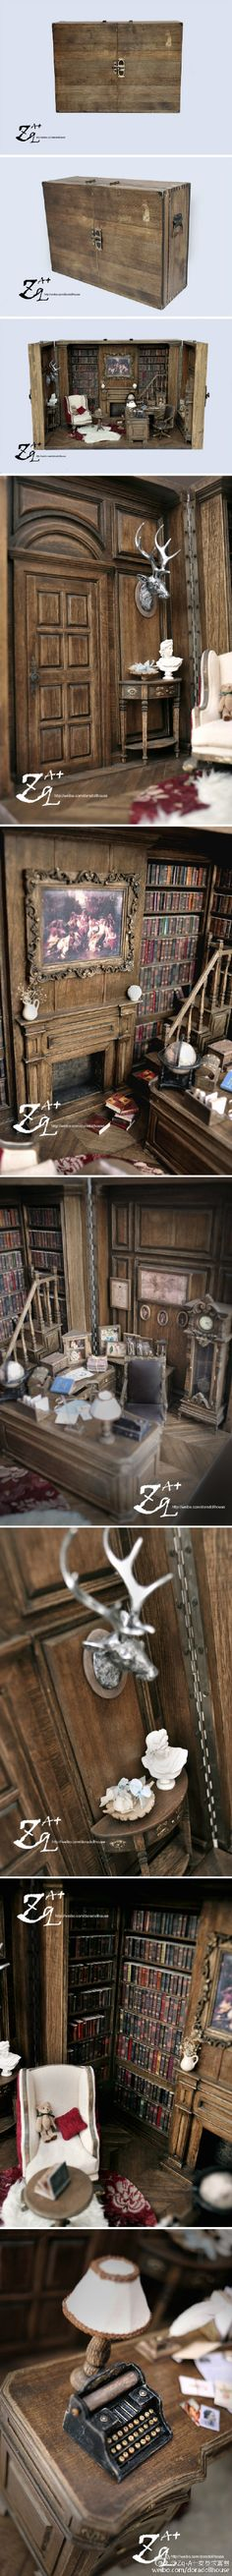 miniature library